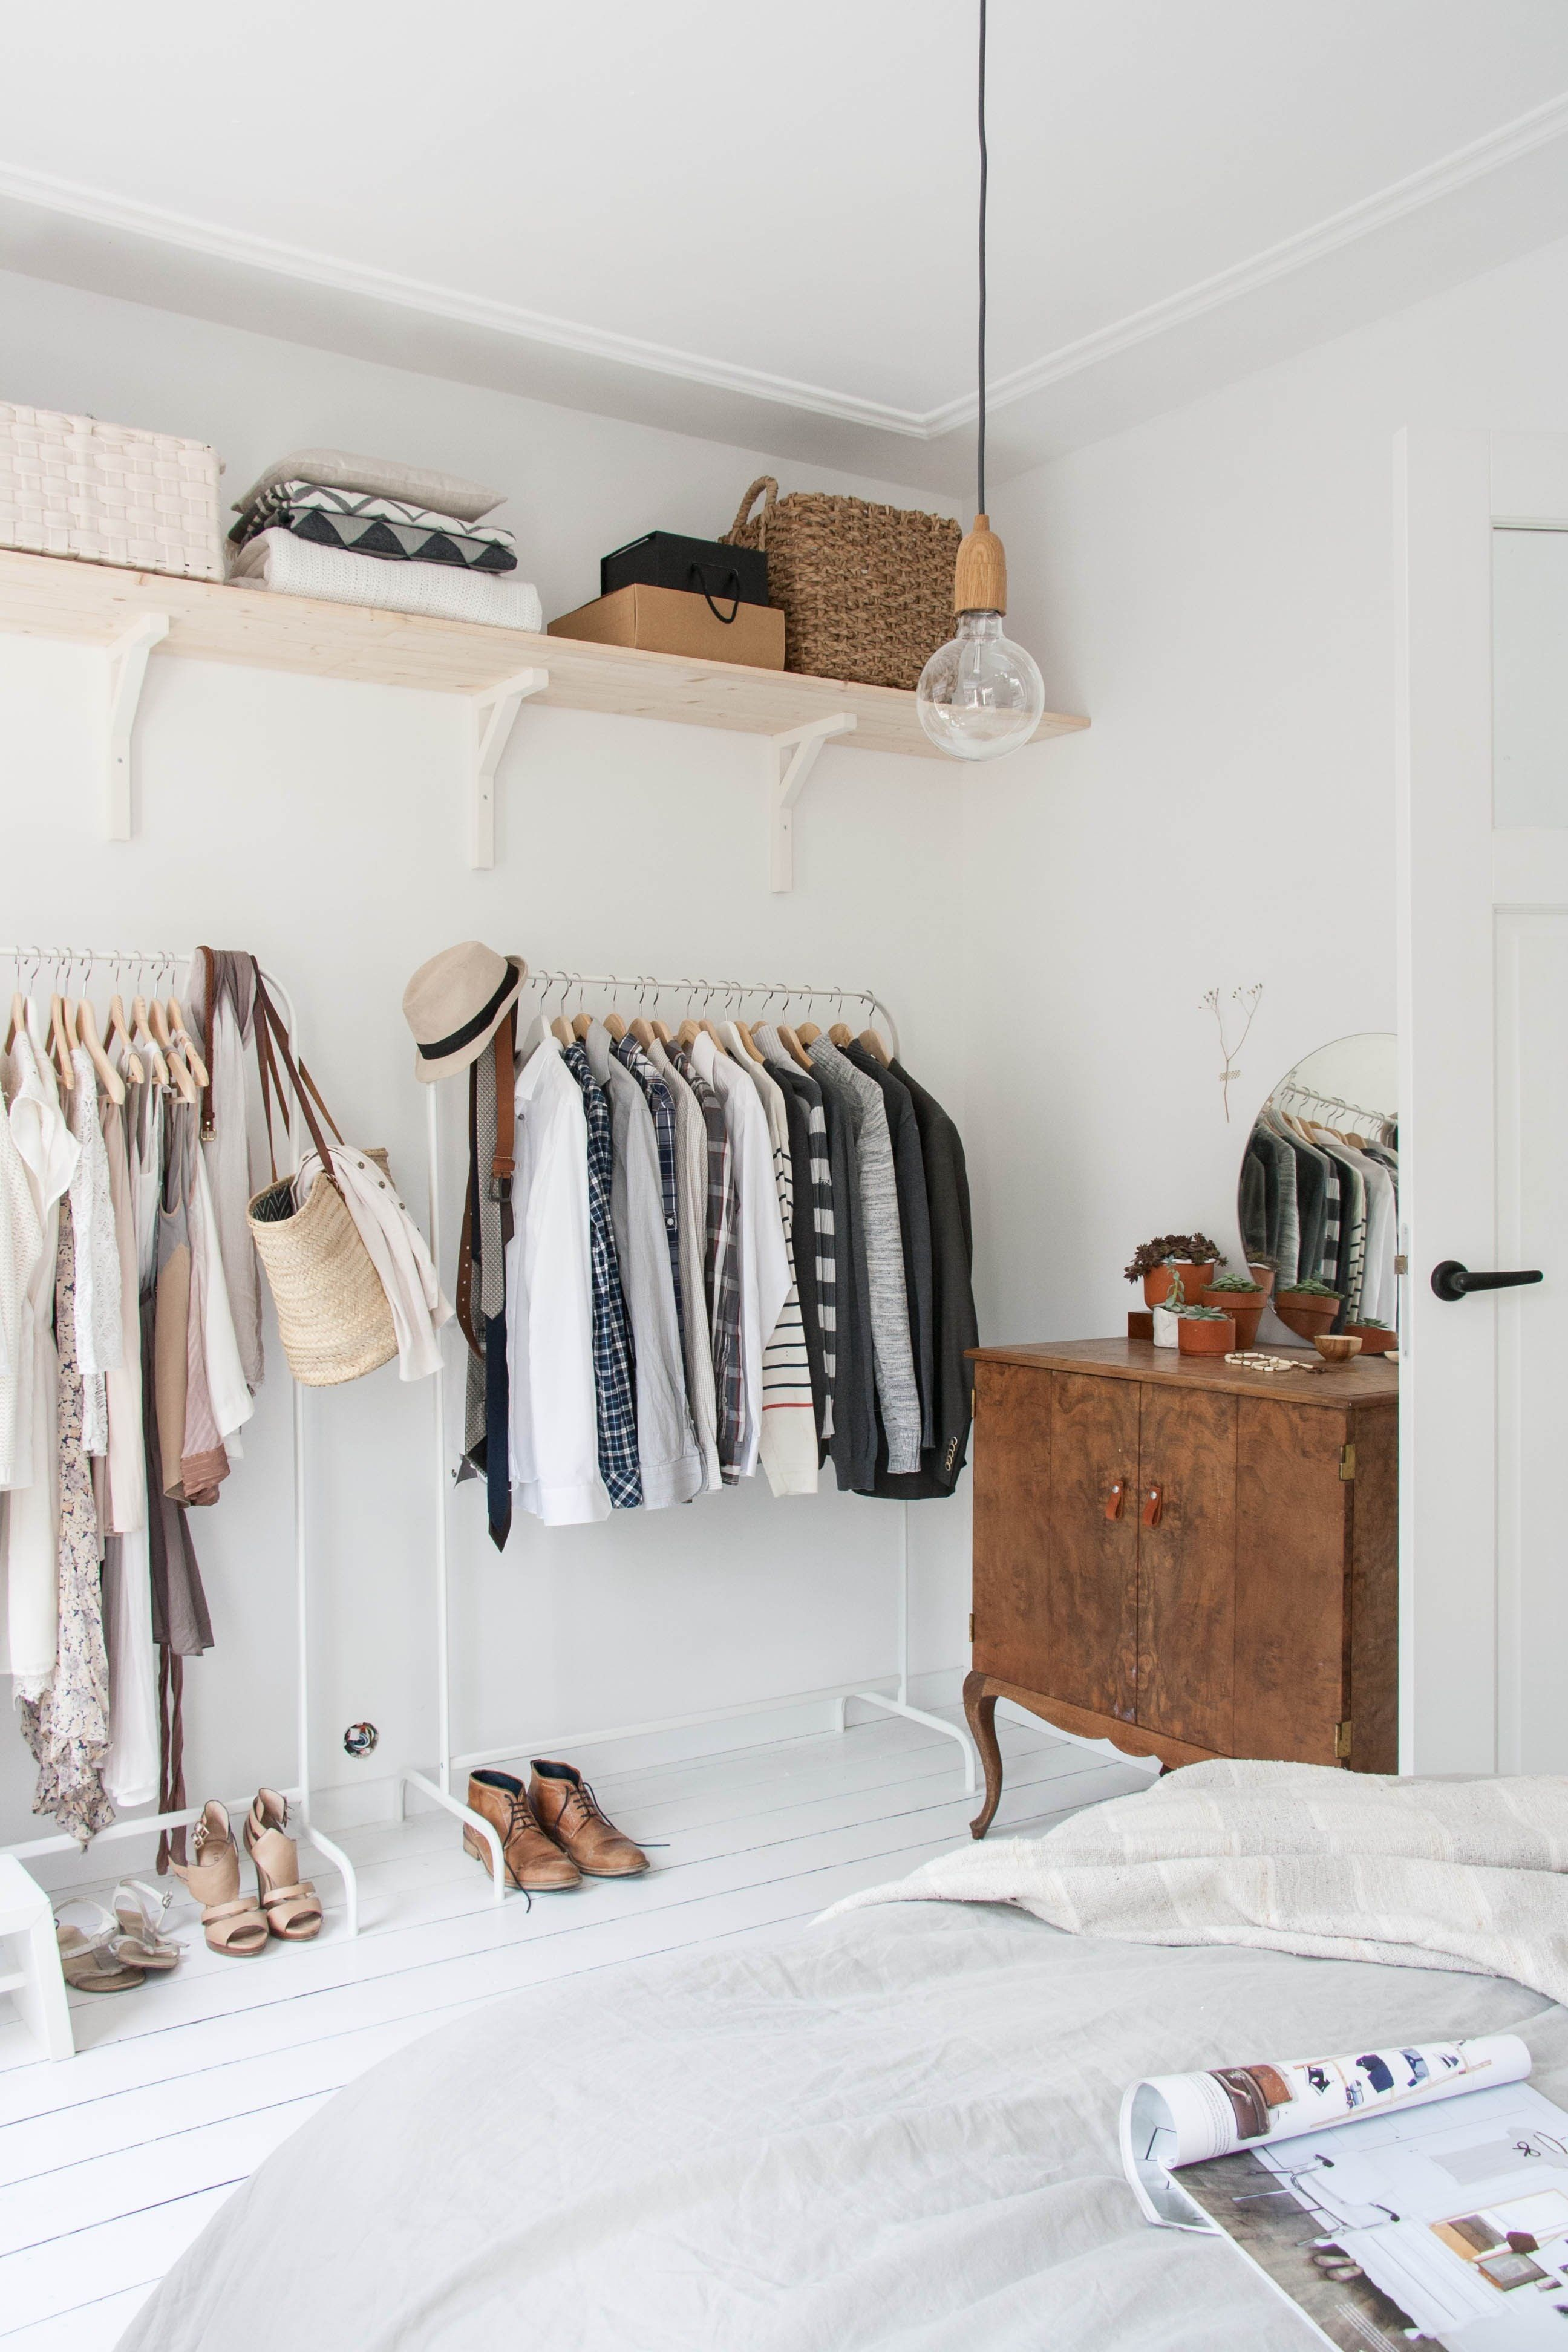 5 Real Life Wardrobe Storage Solutions From Apartments With No